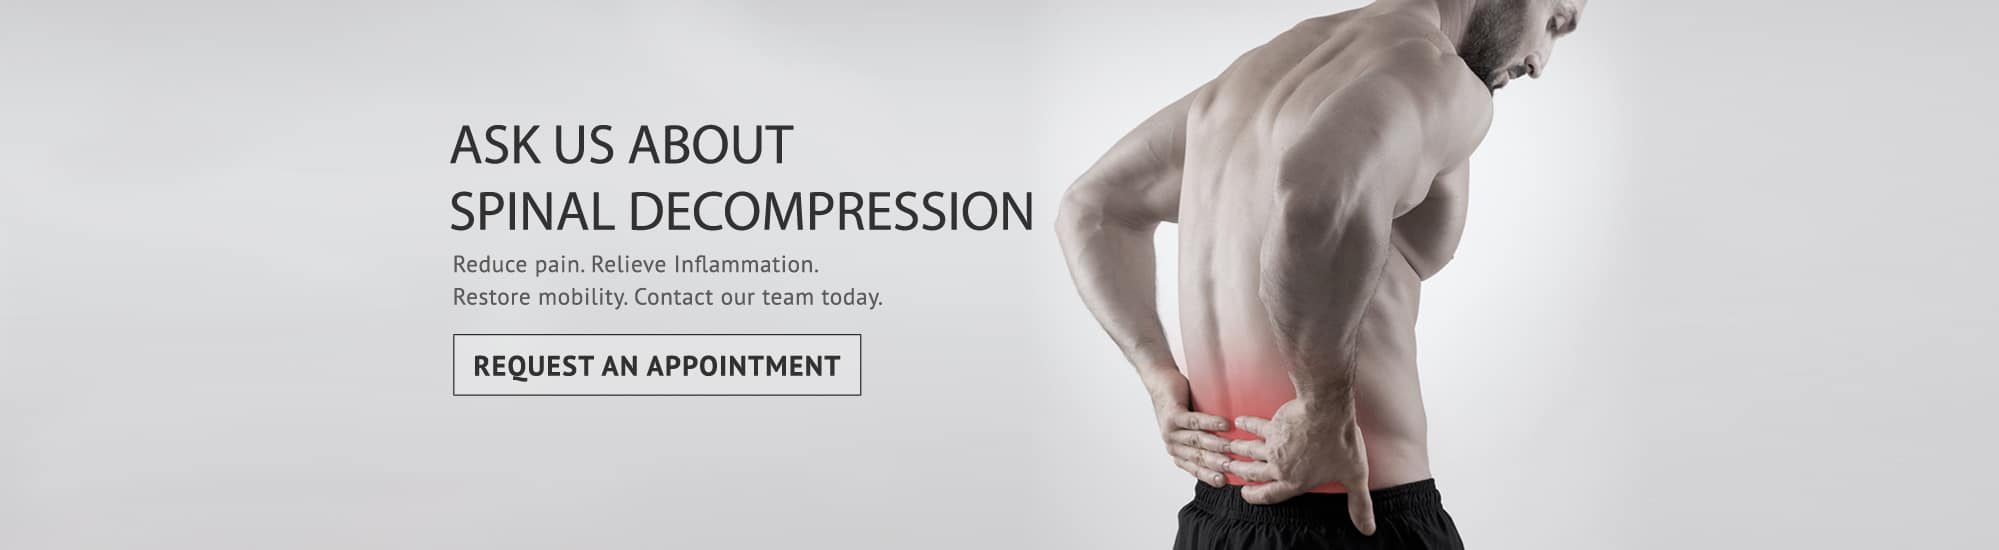 spinal decompression slider